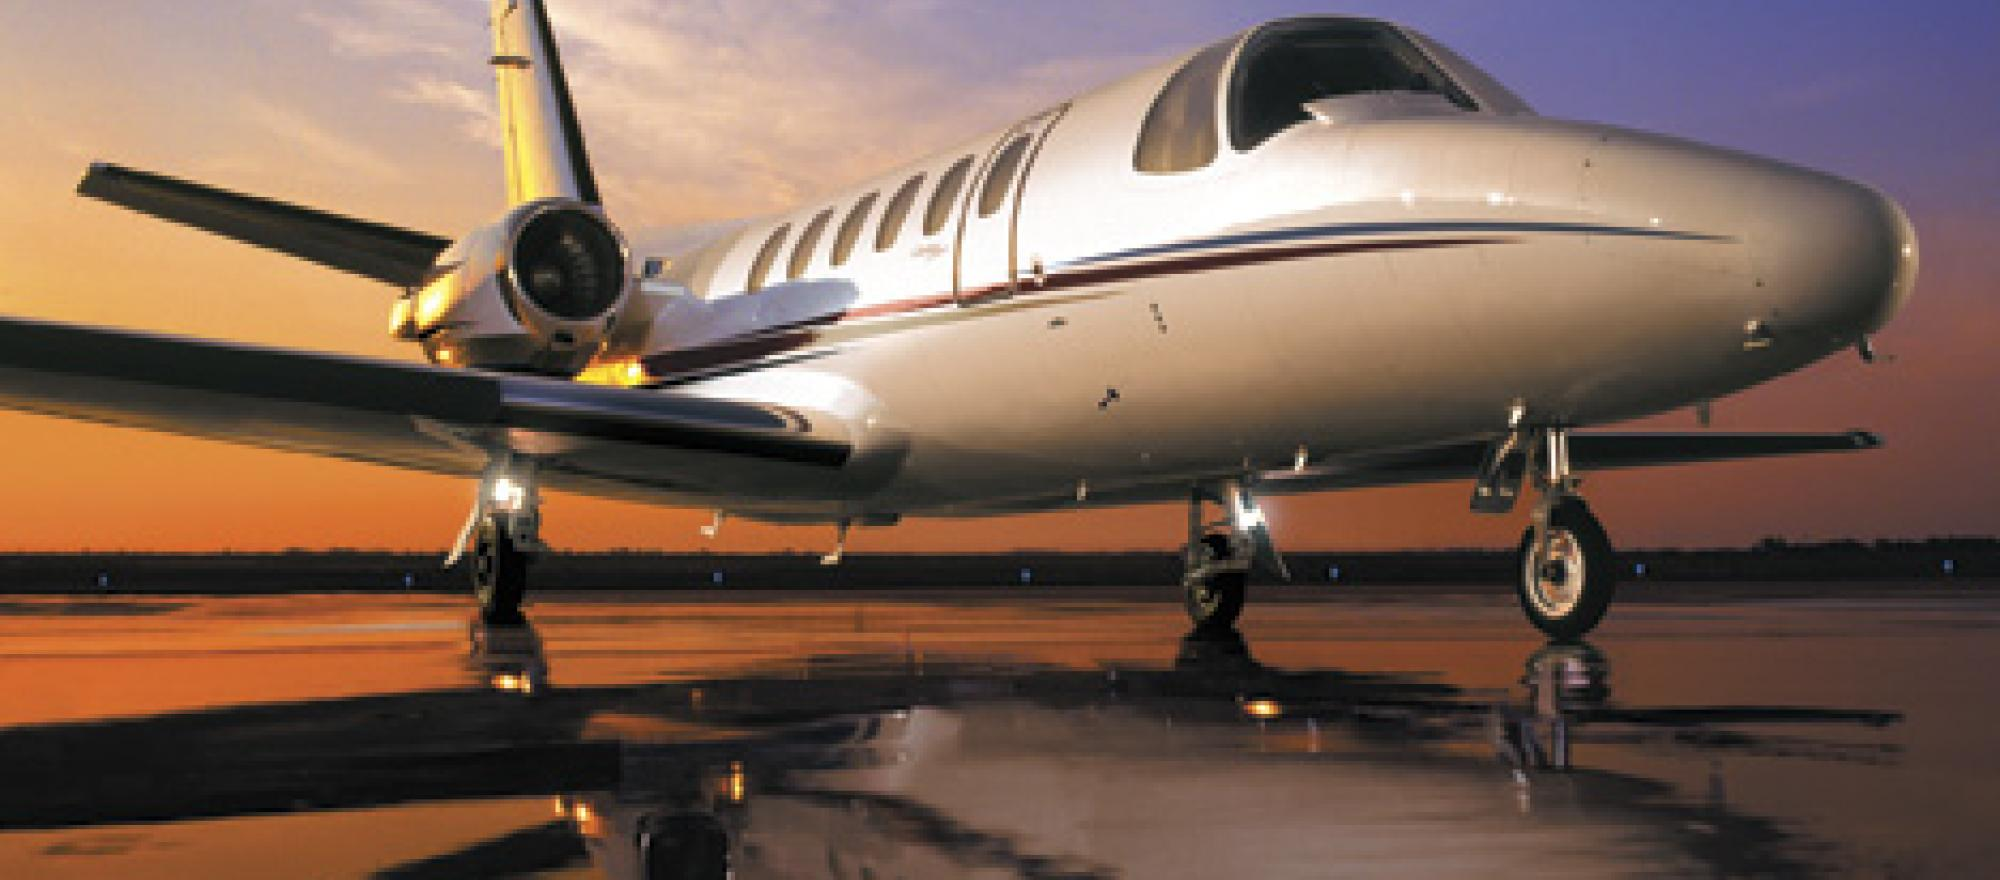 A citation bravo costs far less to operate than a global 5000, a potential pr